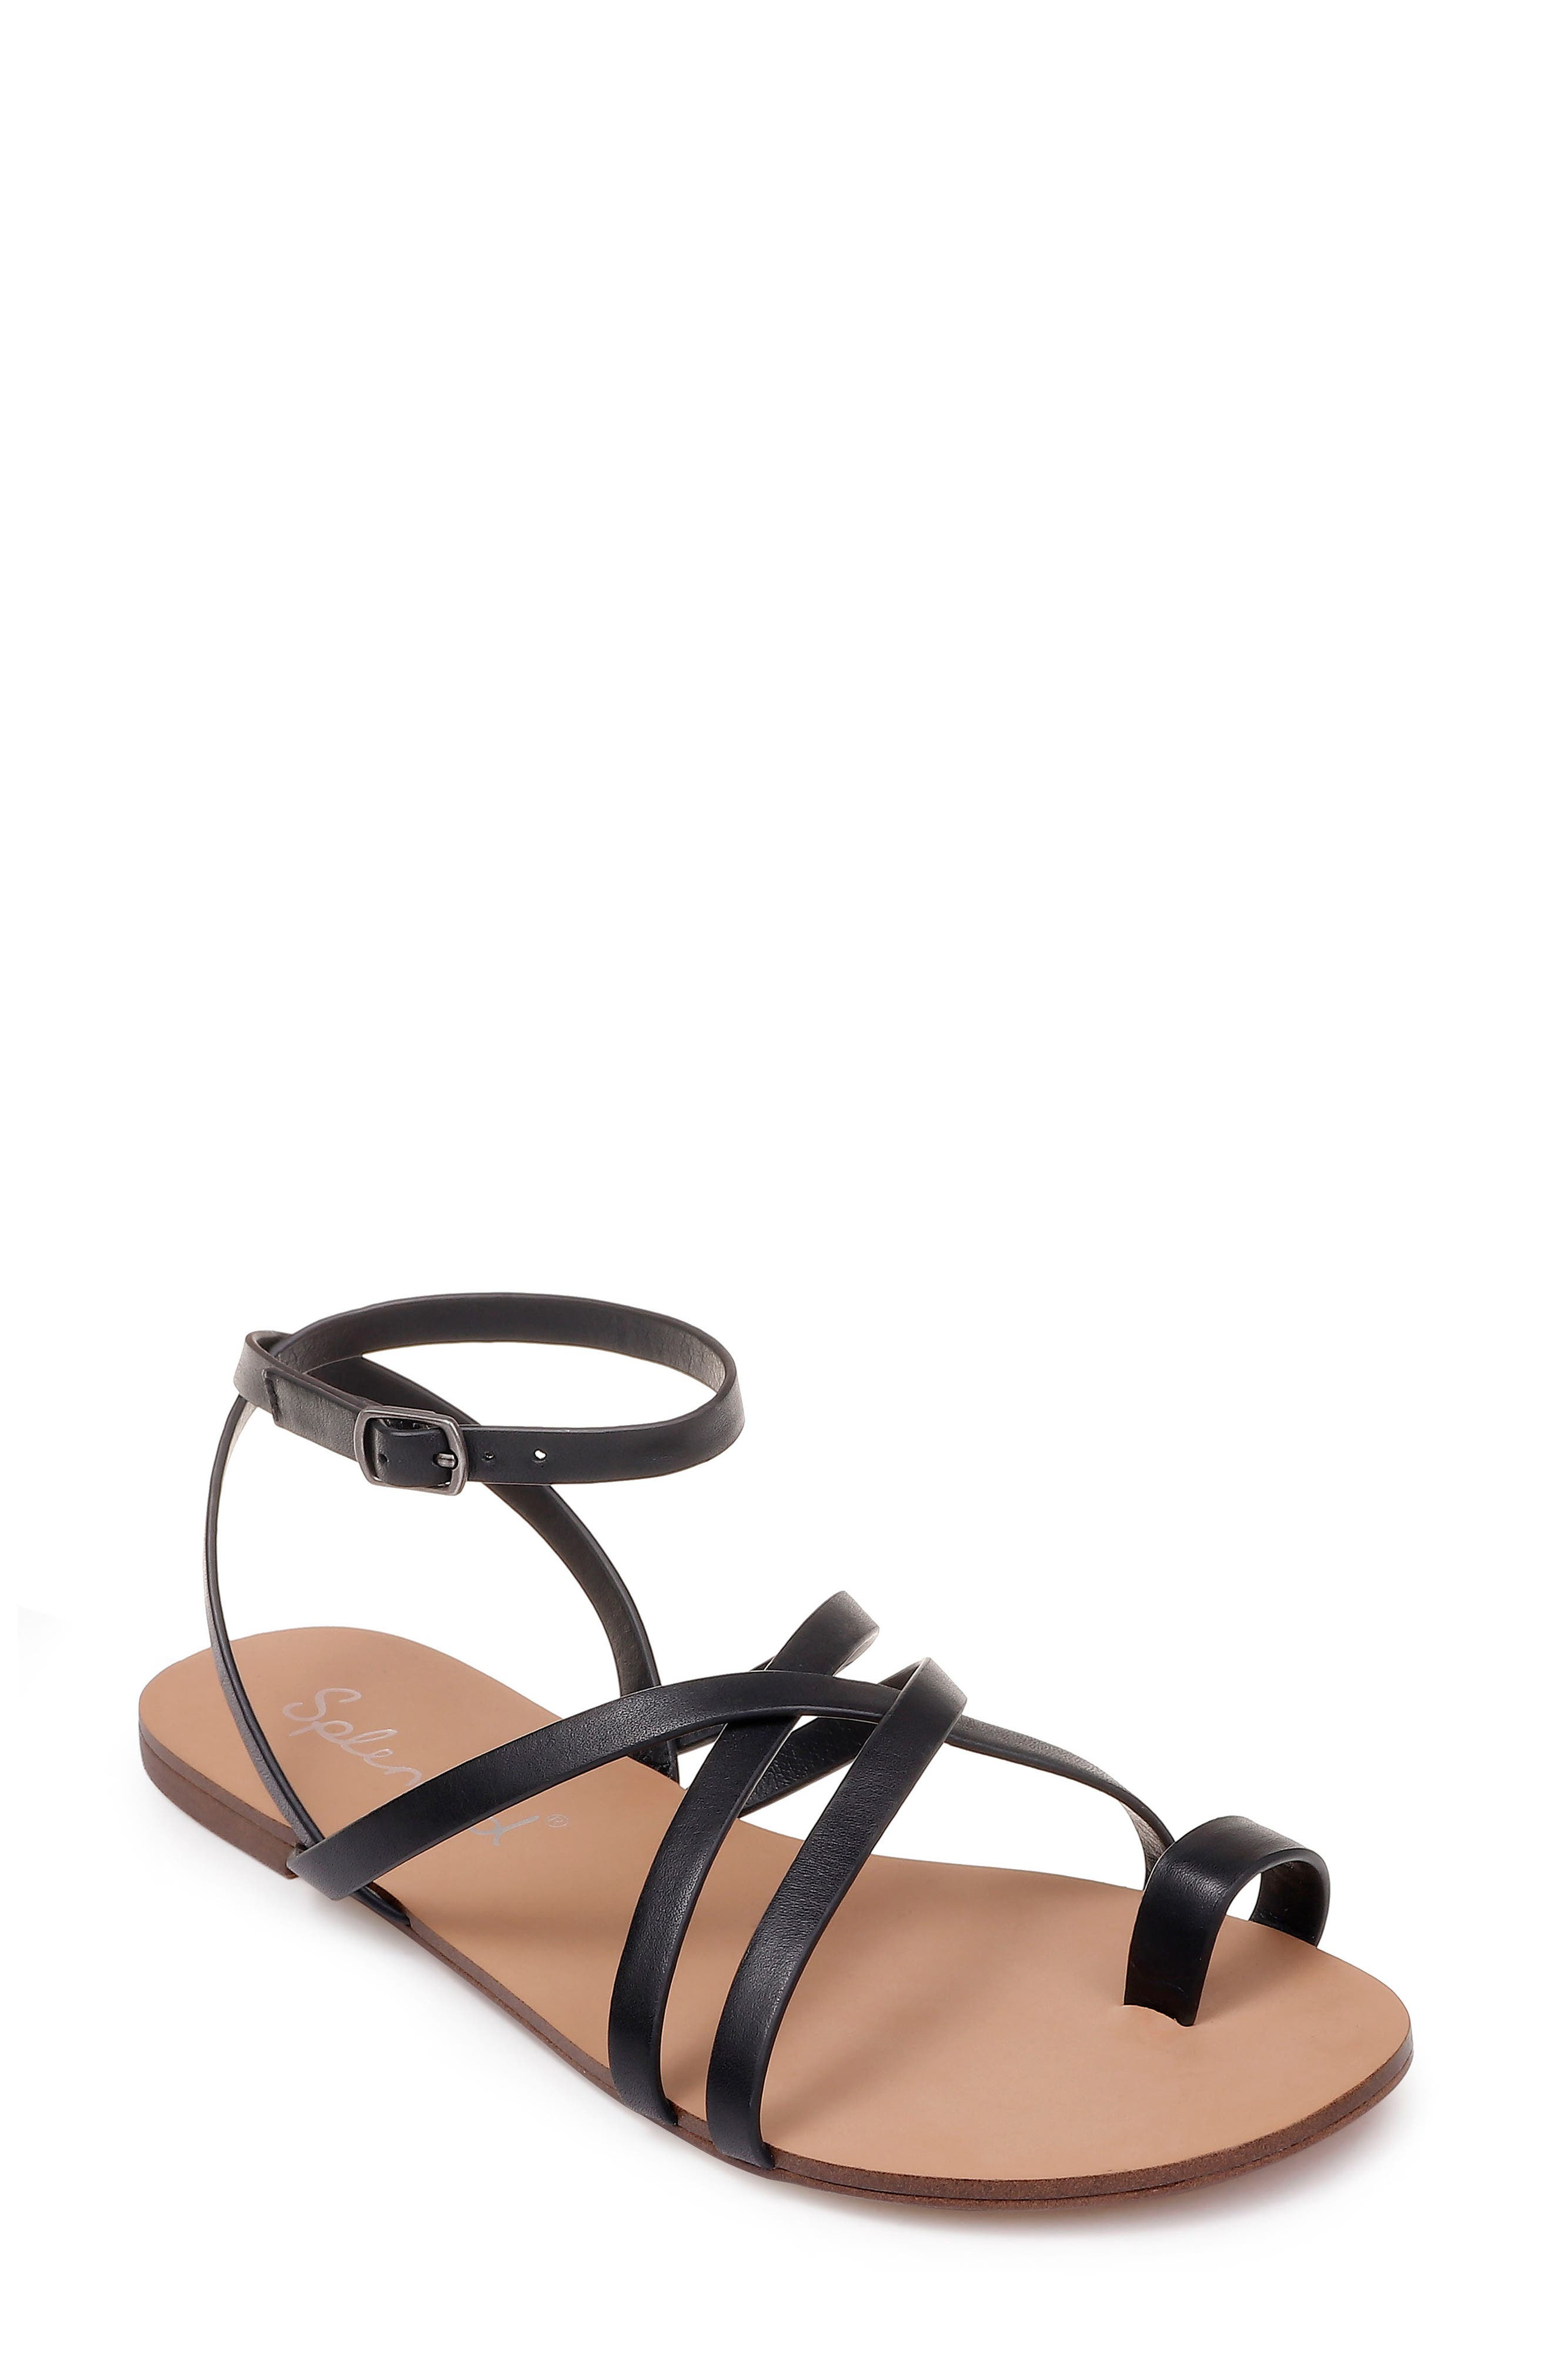 Sully Strappy Toe Loop Sandal, Main, color, BLACK LEATHER